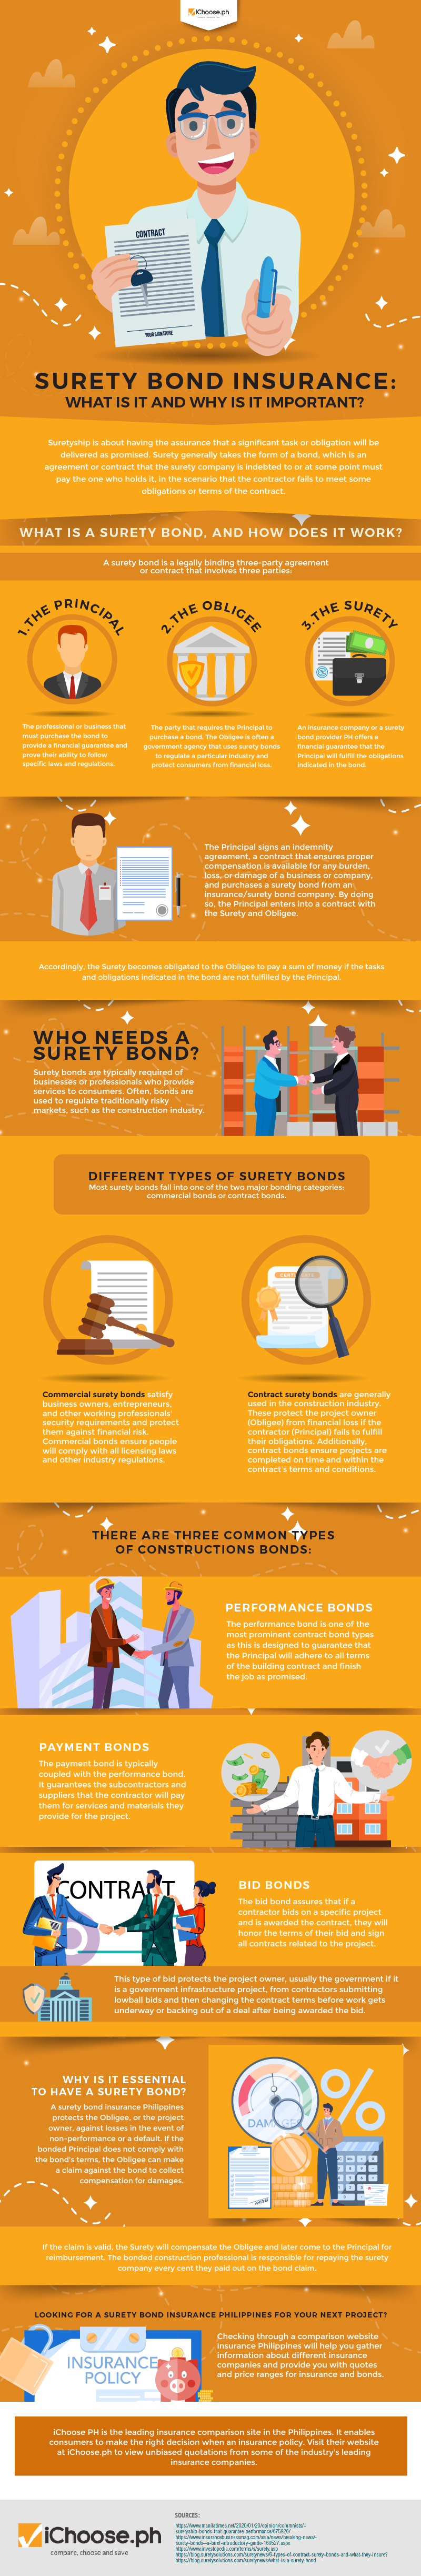 Surety Bond Insurance: What Is It and Why Is It Important?